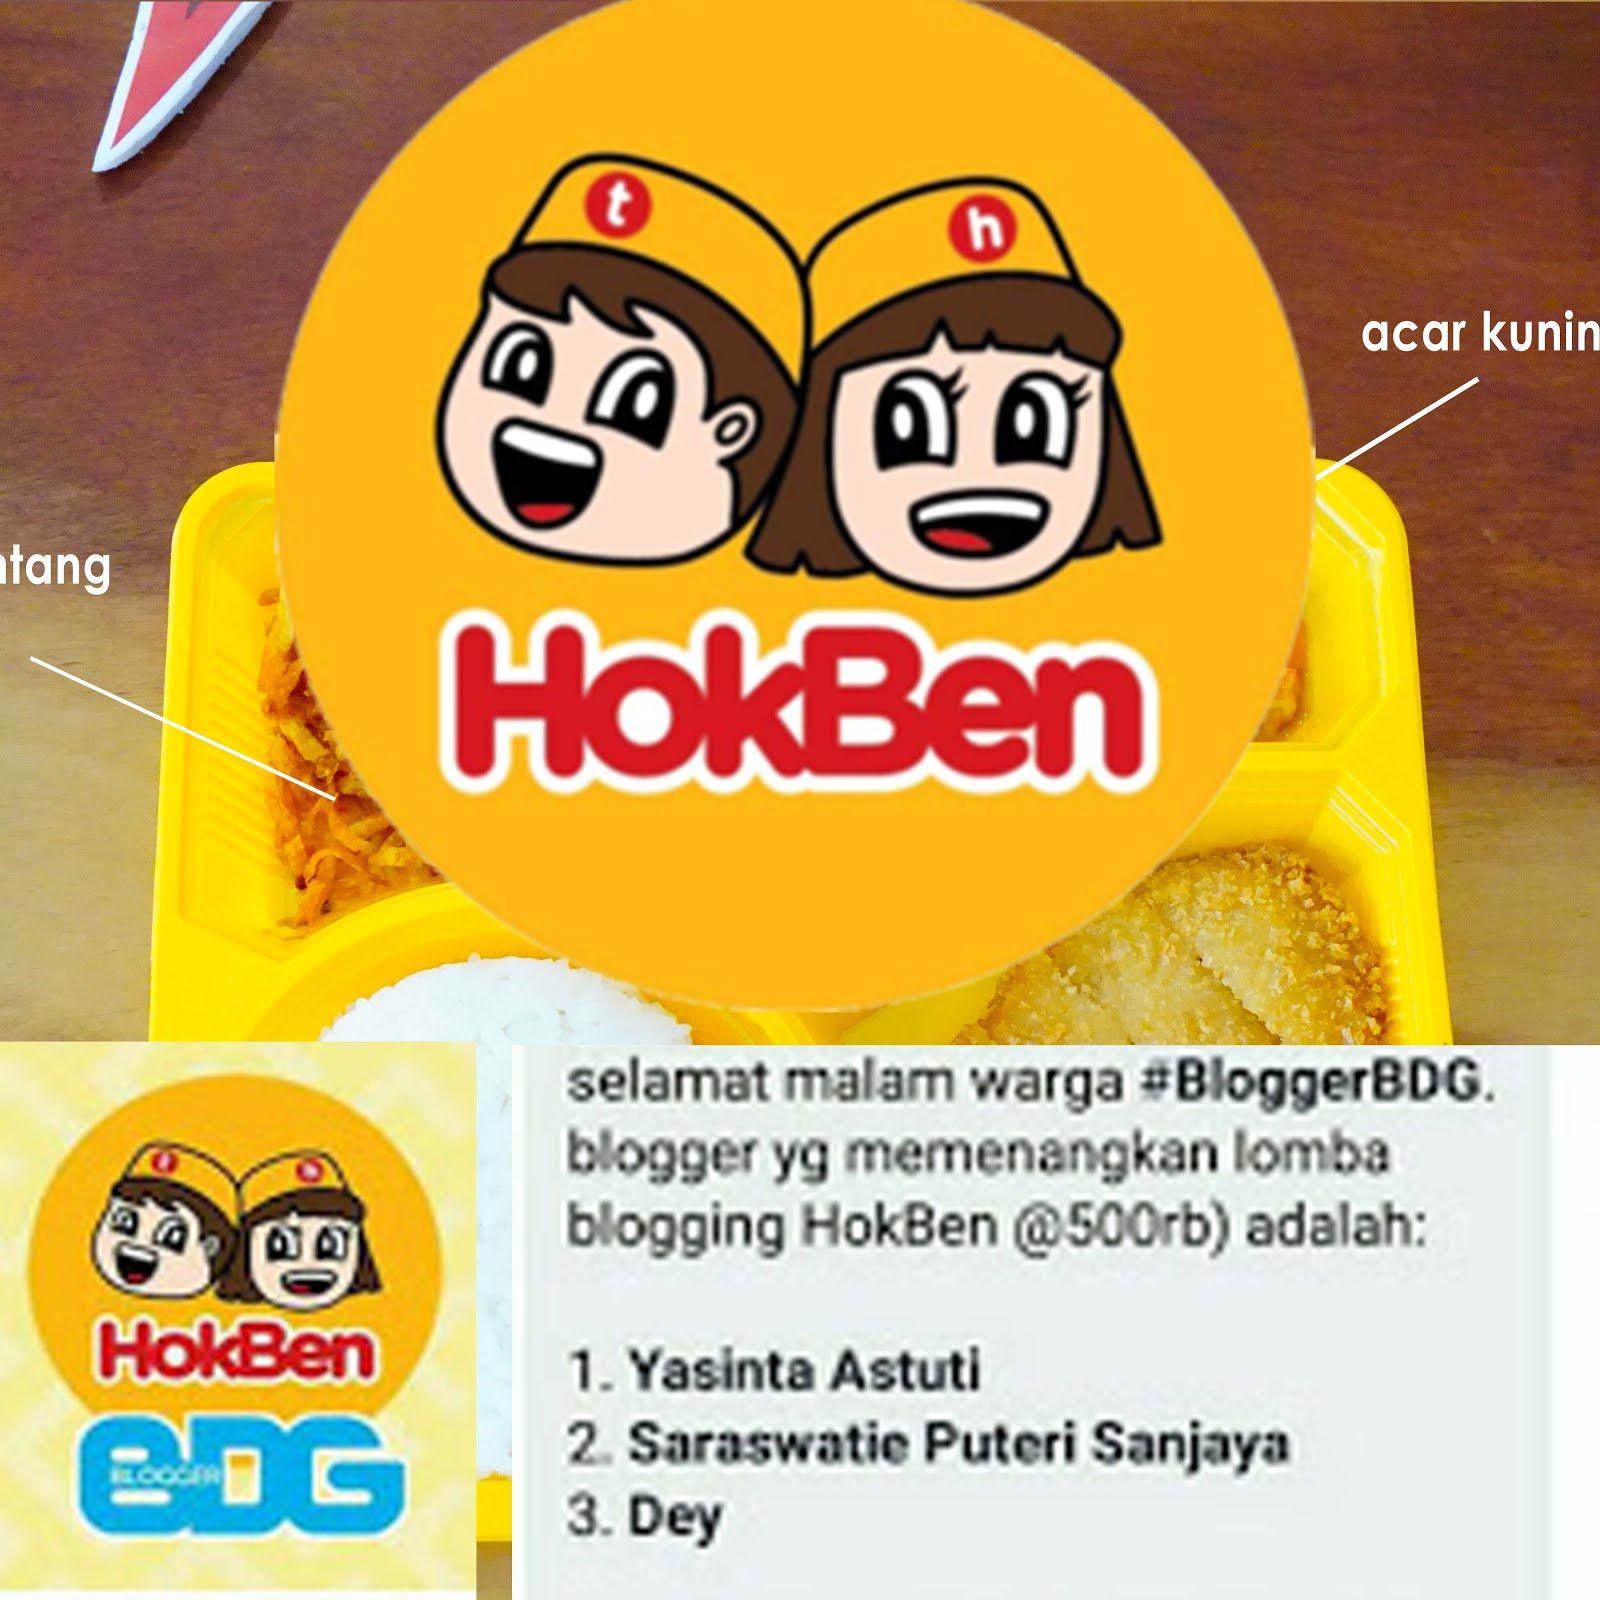 HokBen Blog Competition